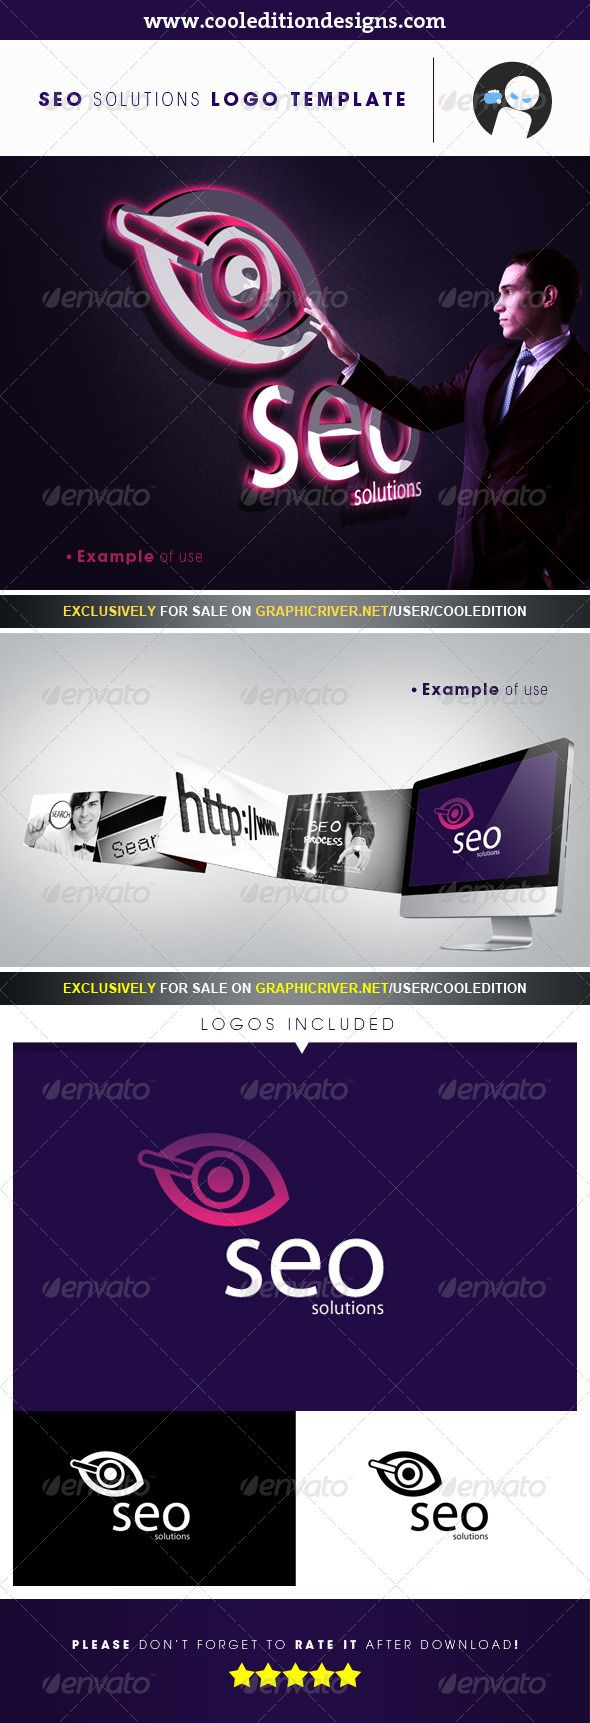 SEO Solutions - Logo Template | $29